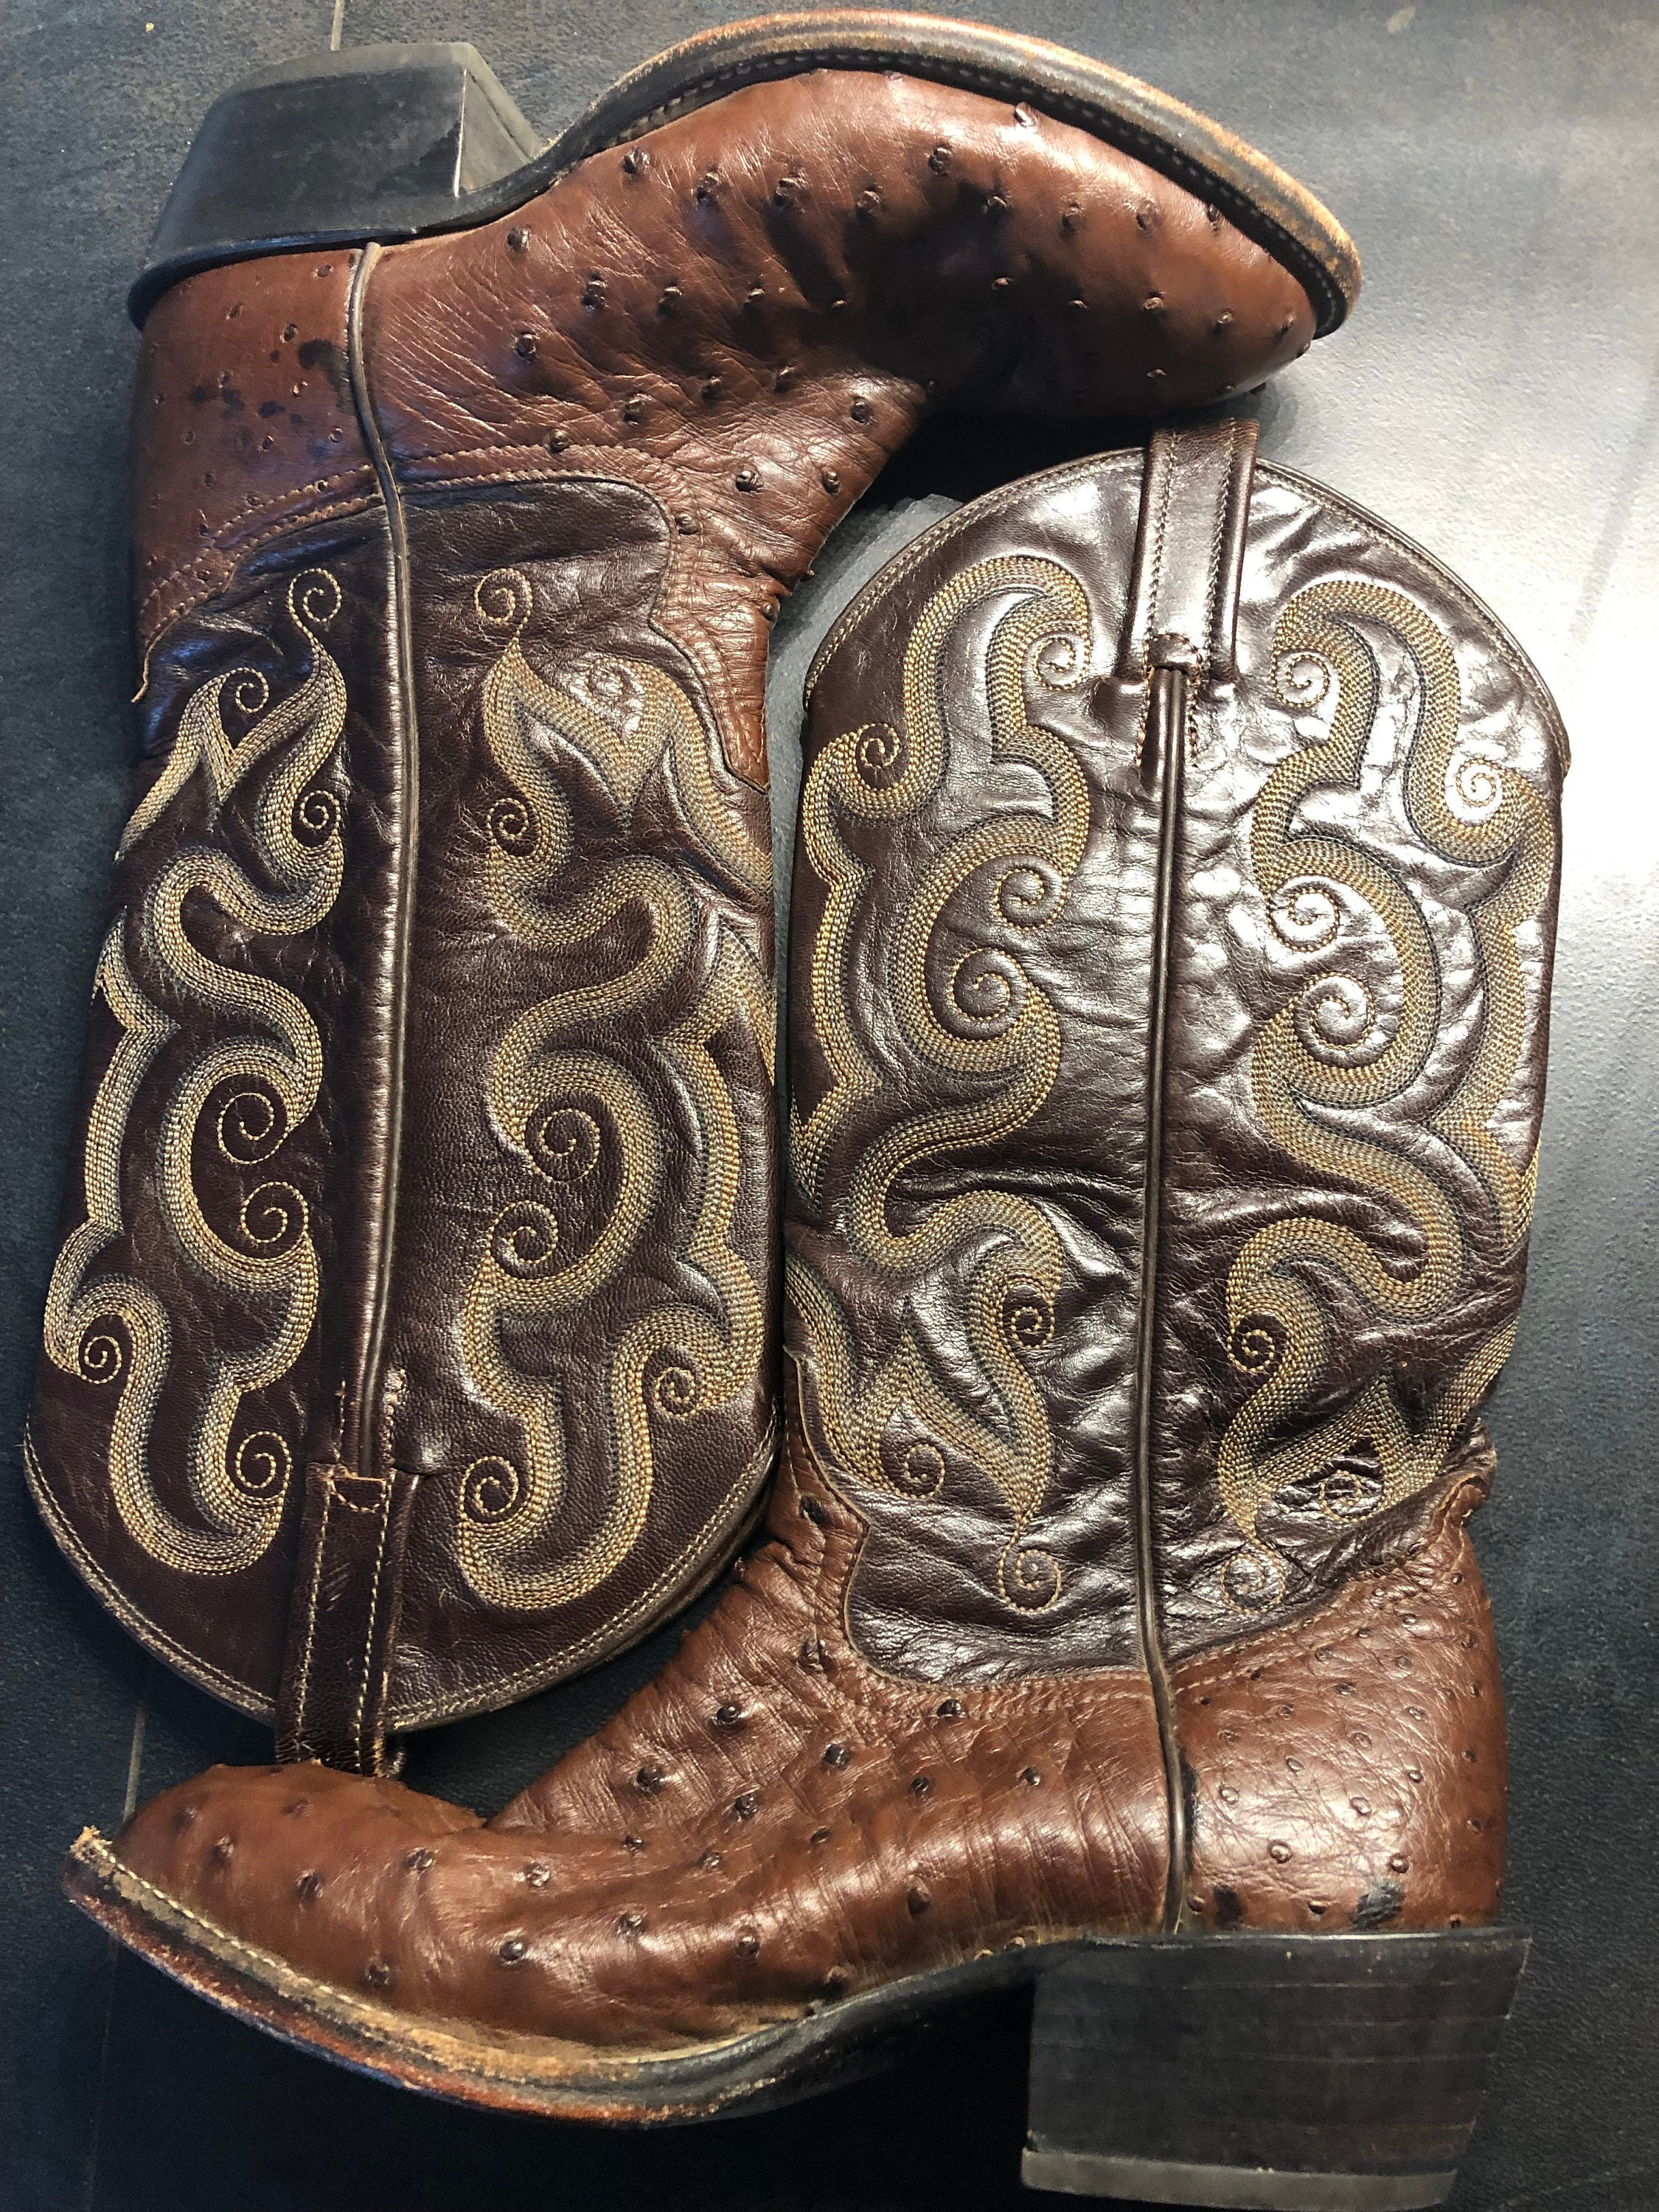 ed713a31001 VINTAGE TONY Lama Western Cowgirl Boots, Whiskey Dark Brown, Exotic Skin  Full Quill, US Womens Size 8 M